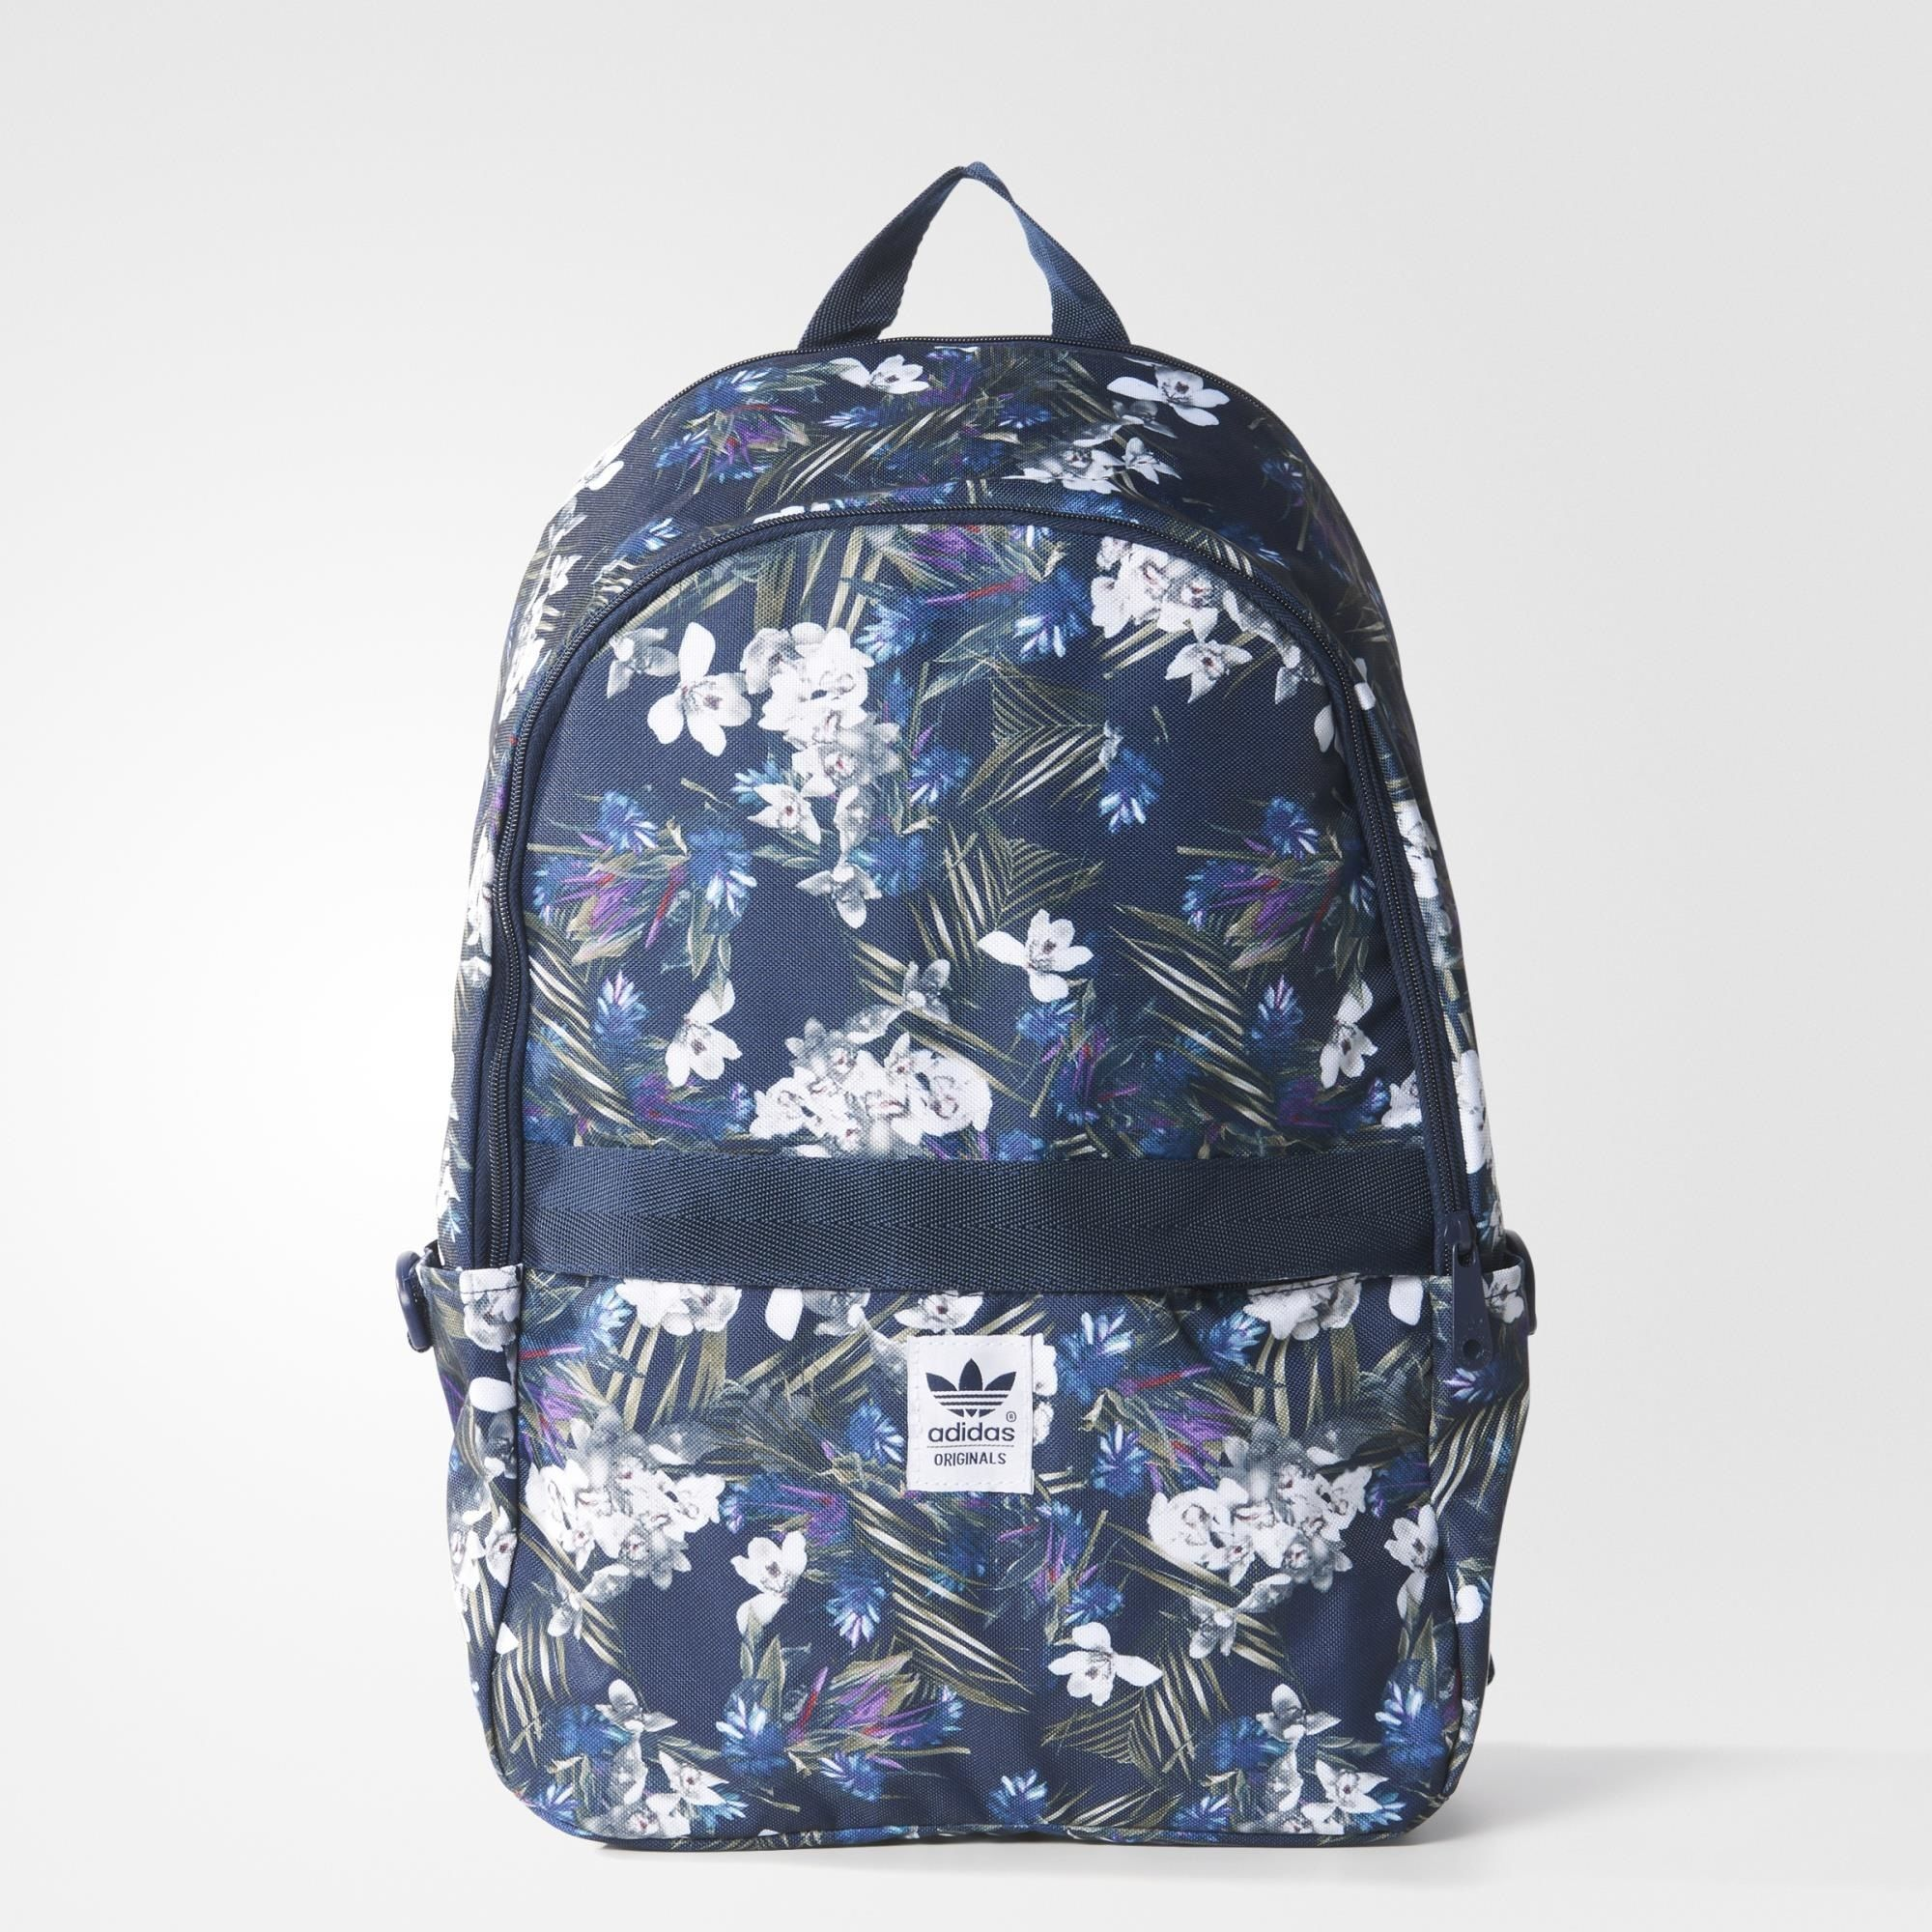 adidas Dark Floral Backpack - Multicolor  41fb1f391e24b